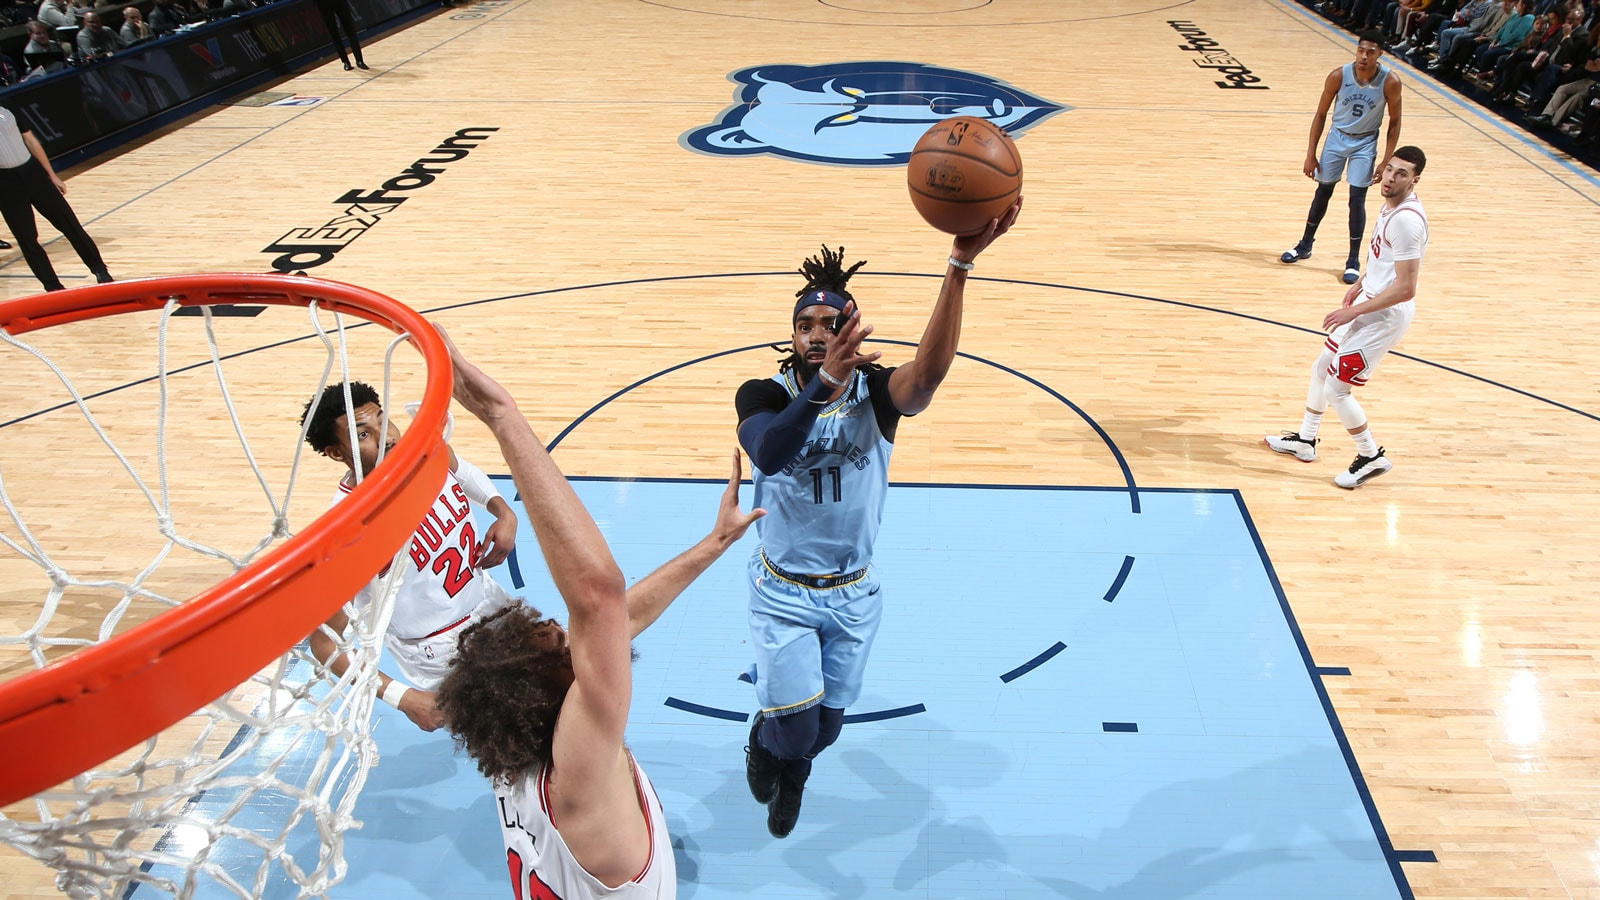 Mike Conley #11 of the Memphis Grizzlies drives to the basket